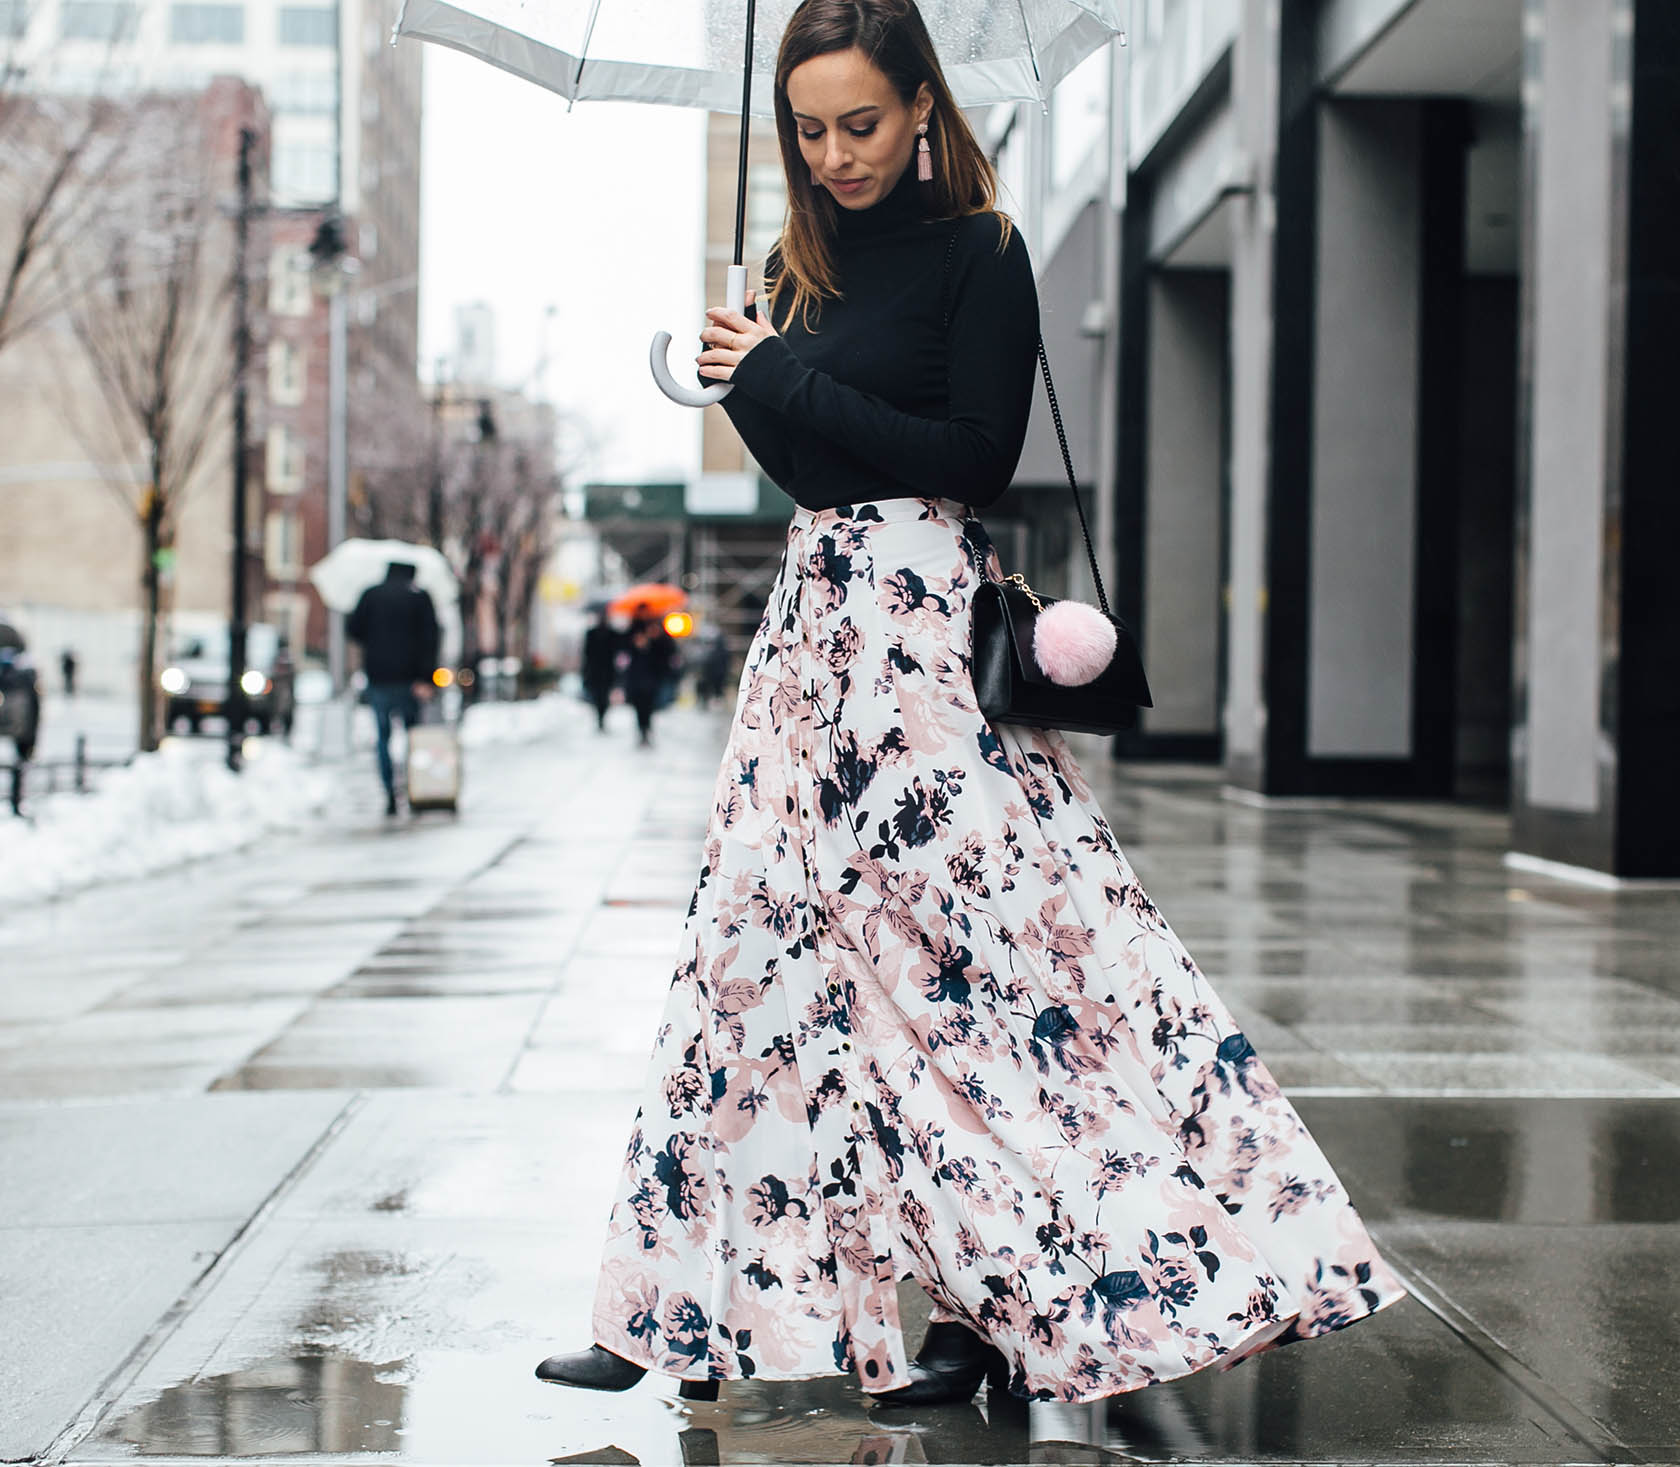 Sydne-Style-wears-Yumi-Kim-floral-print-maxi-skirt-with-black-turtleneck-for-fashion-week-street-style